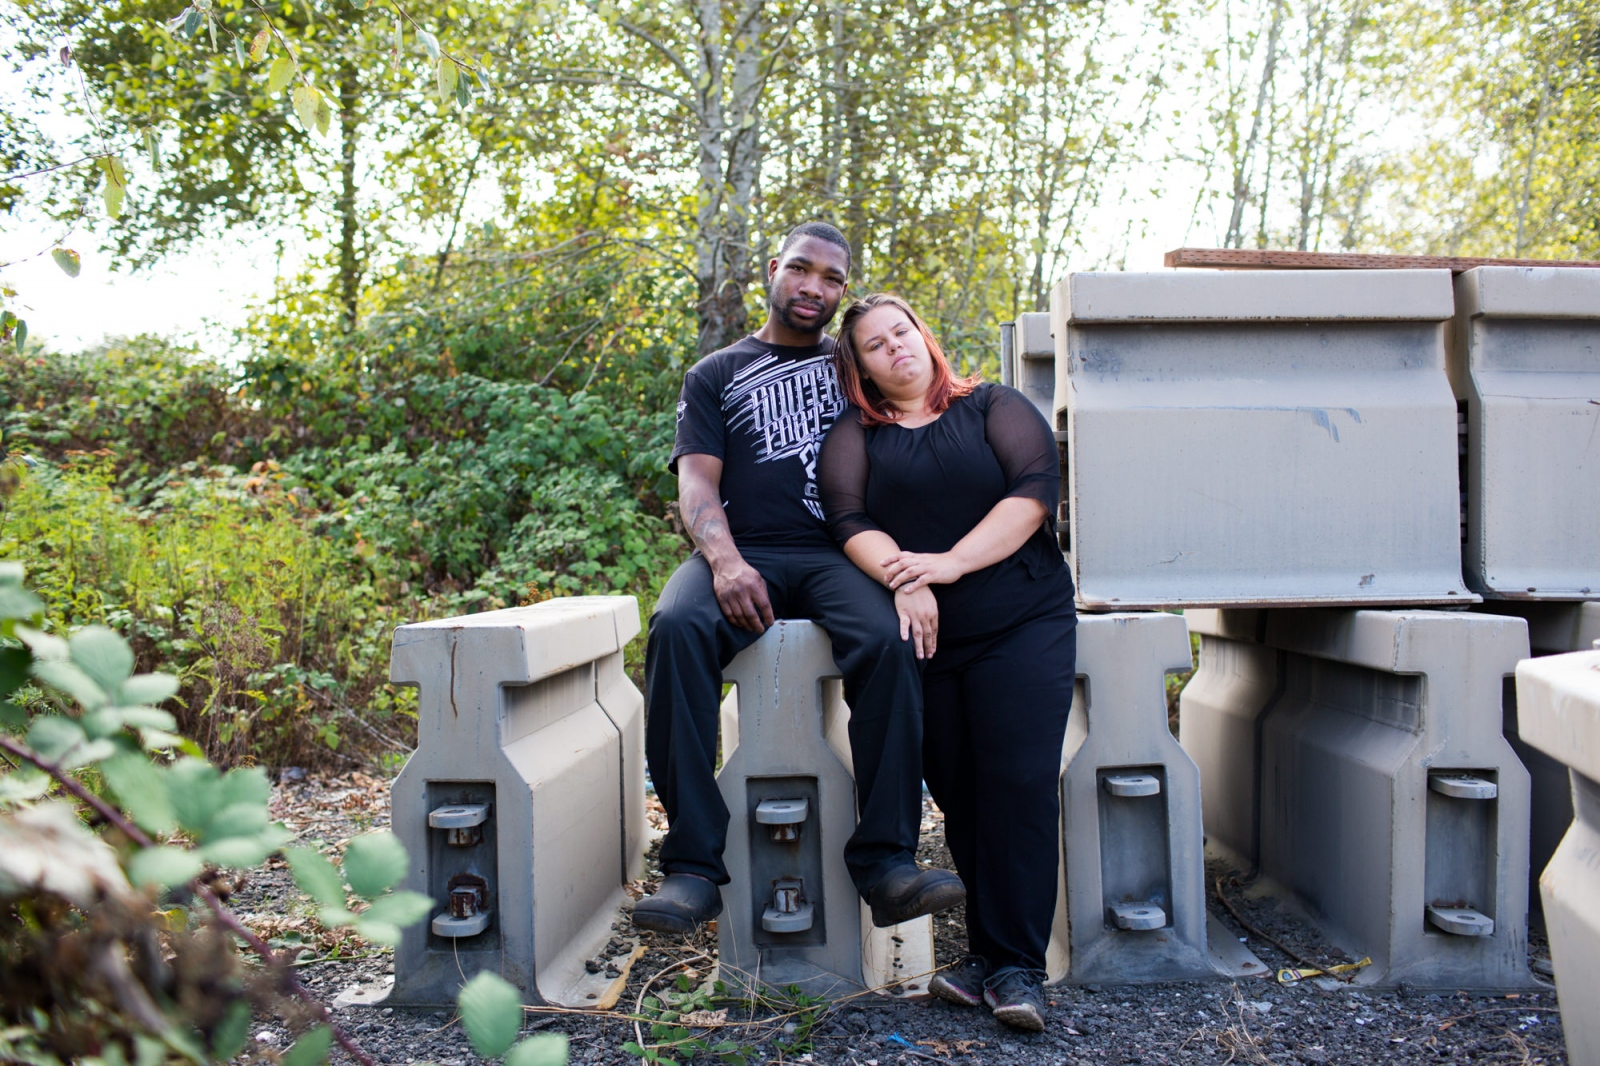 Christopher and Jackie, Camp Second Chance, Seattle, WA from the series 'Love without Shelter'